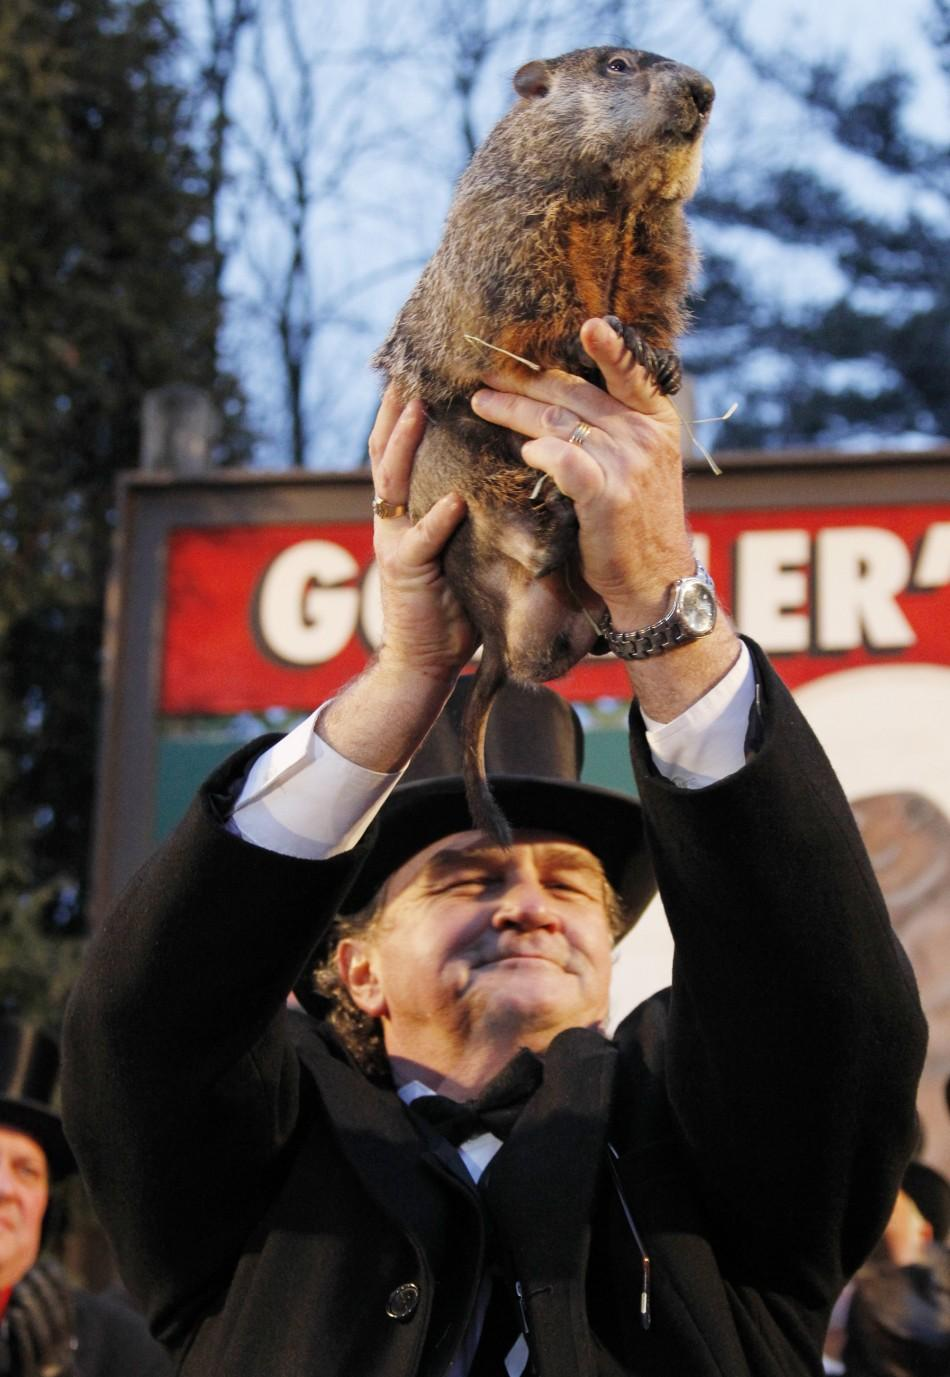 Groundhog Day 2012